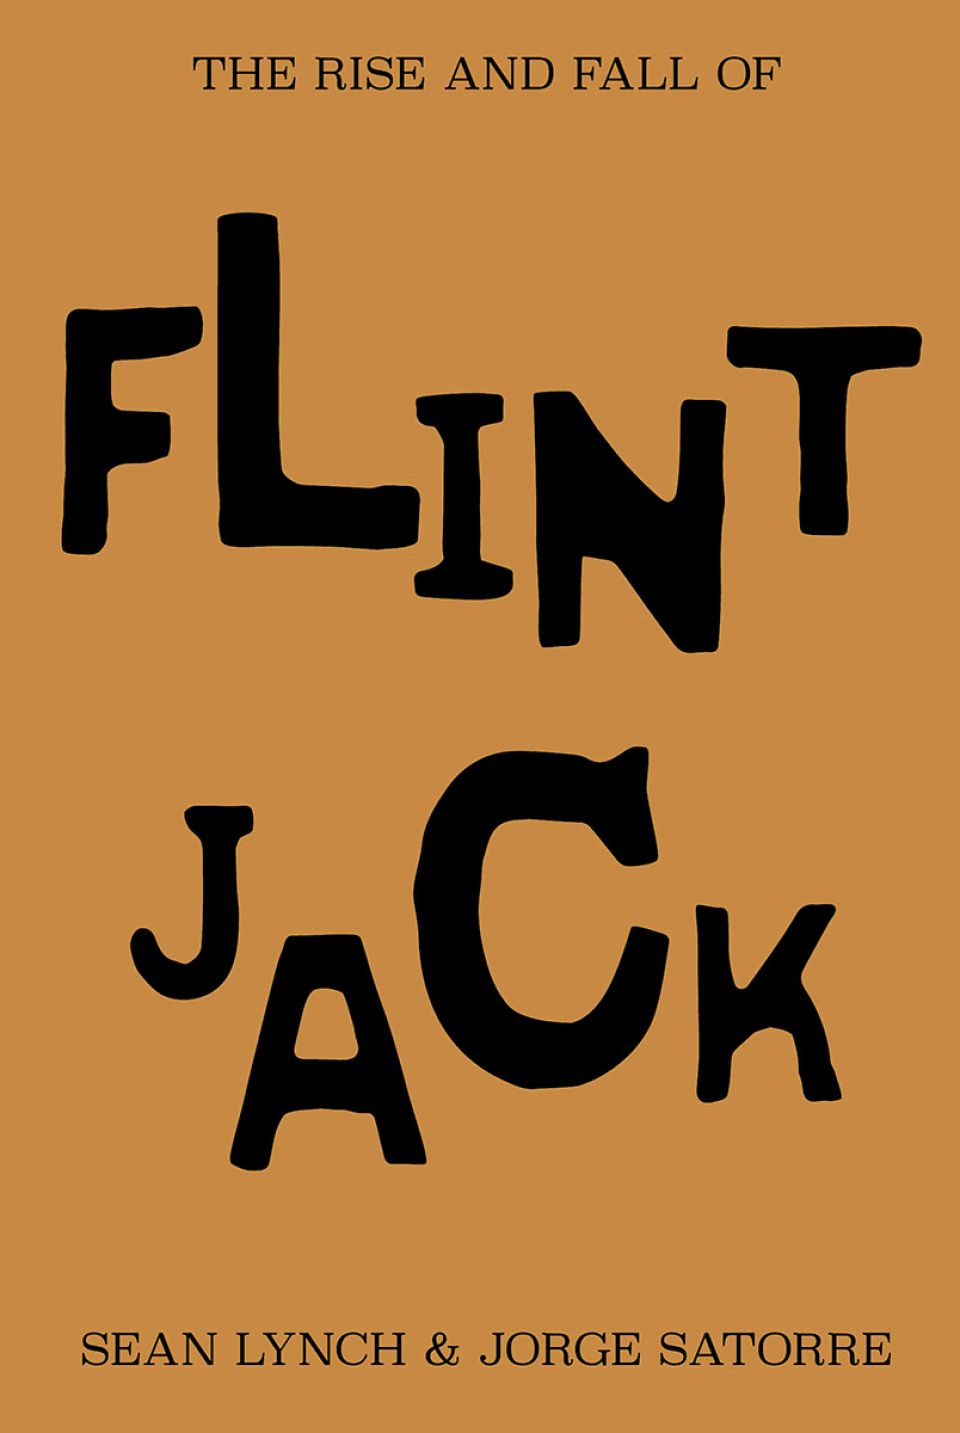 The Rise and Fall of Flint Jack cover